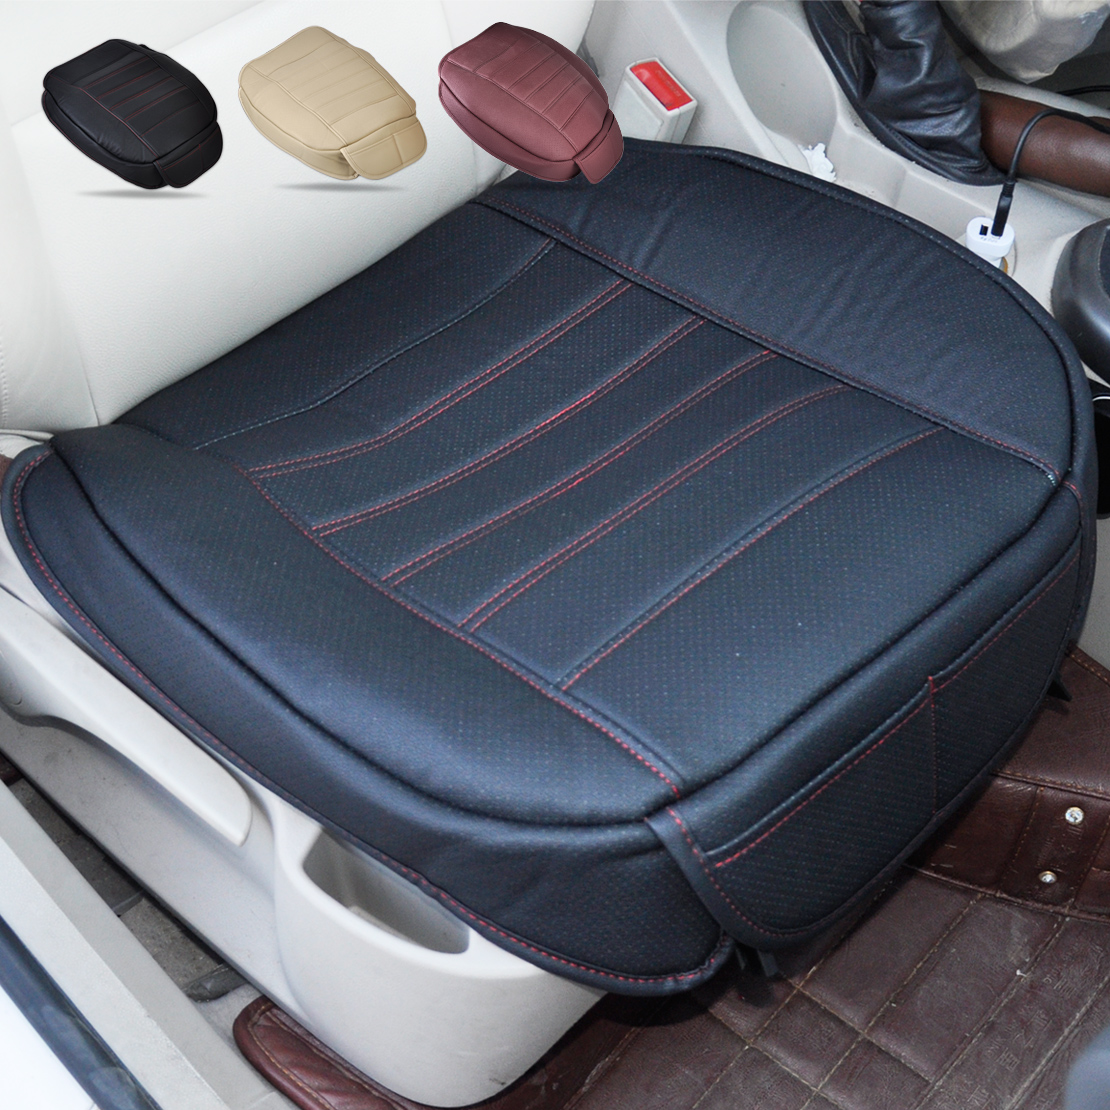 DWCX Universal PU leather Car Interior Front Seat Cover Seatpad For Ford Focus VW Golf Audi A6 BMW E46 E90 Nissan Honda Toyota